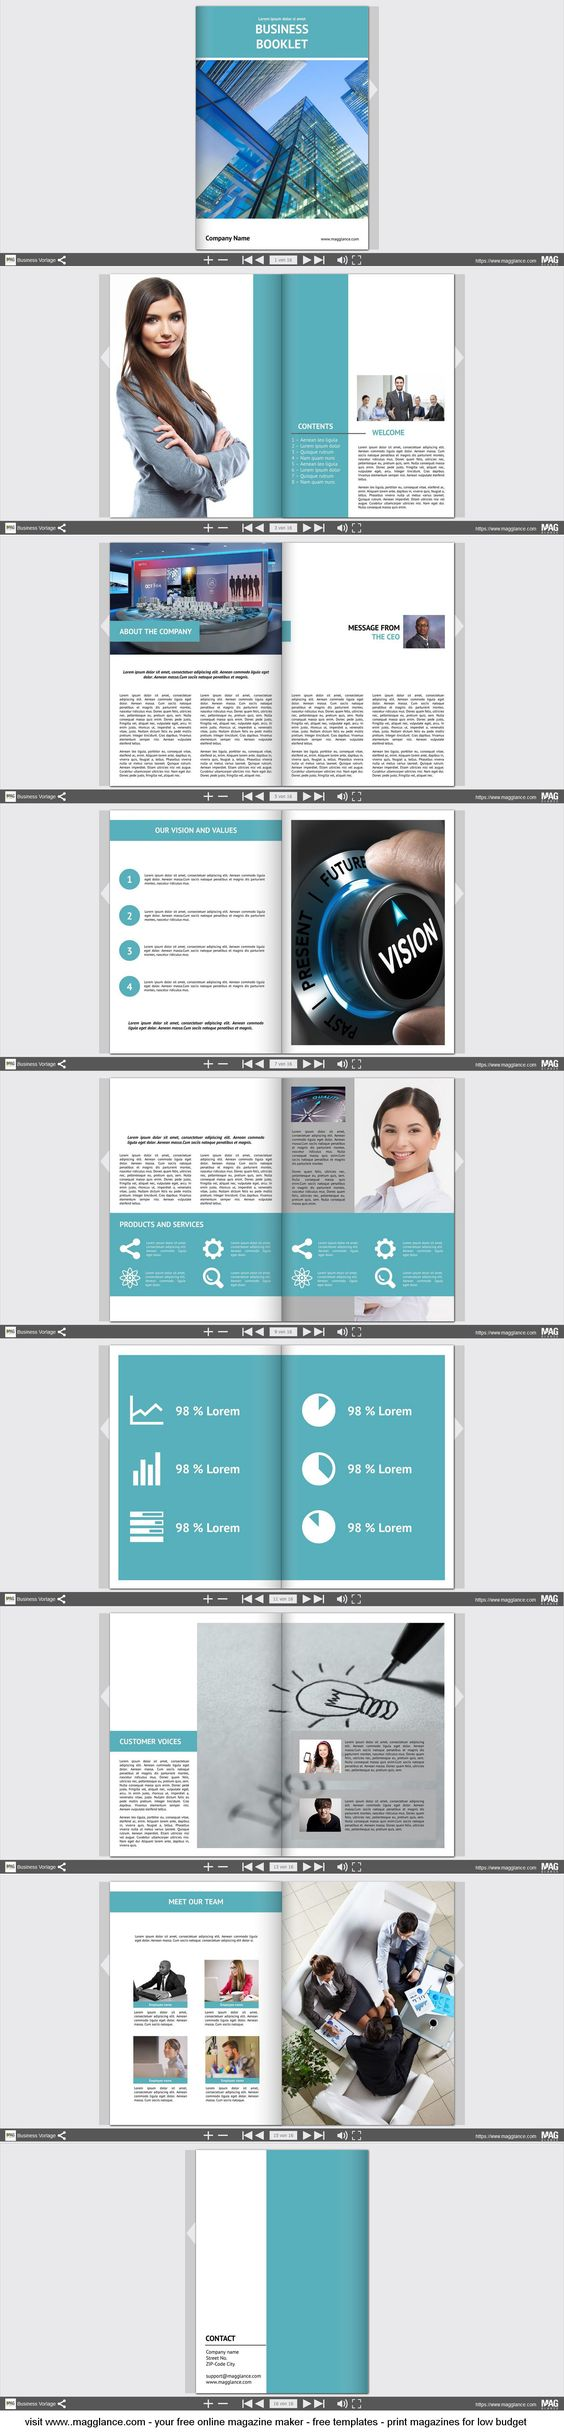 Pin By Mag Glance GmbH On Plantillas Folletos Pinterest - Online brochures templates